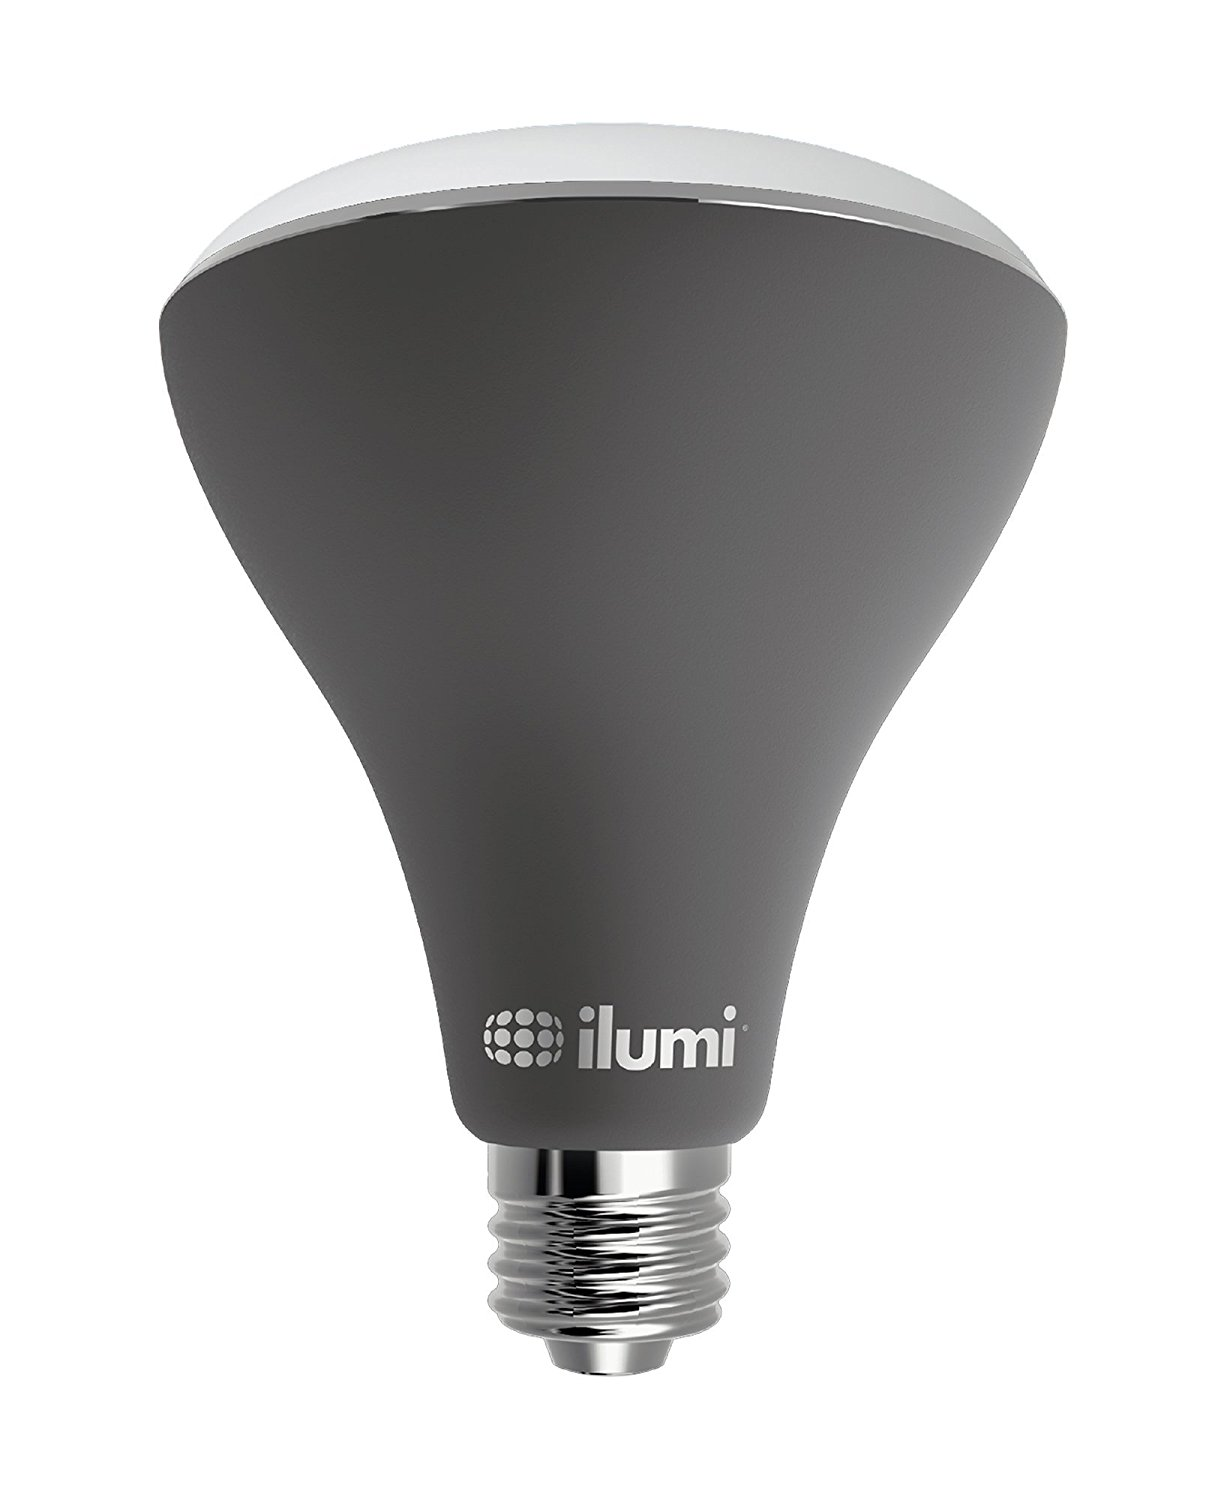 Ilumi Outdoor Bluetooth Smart Led Br30 Flood Light Bulb 2nd Wiring A Generation Smartphone Controlled Dimmable Multicolored Color Changing Works With